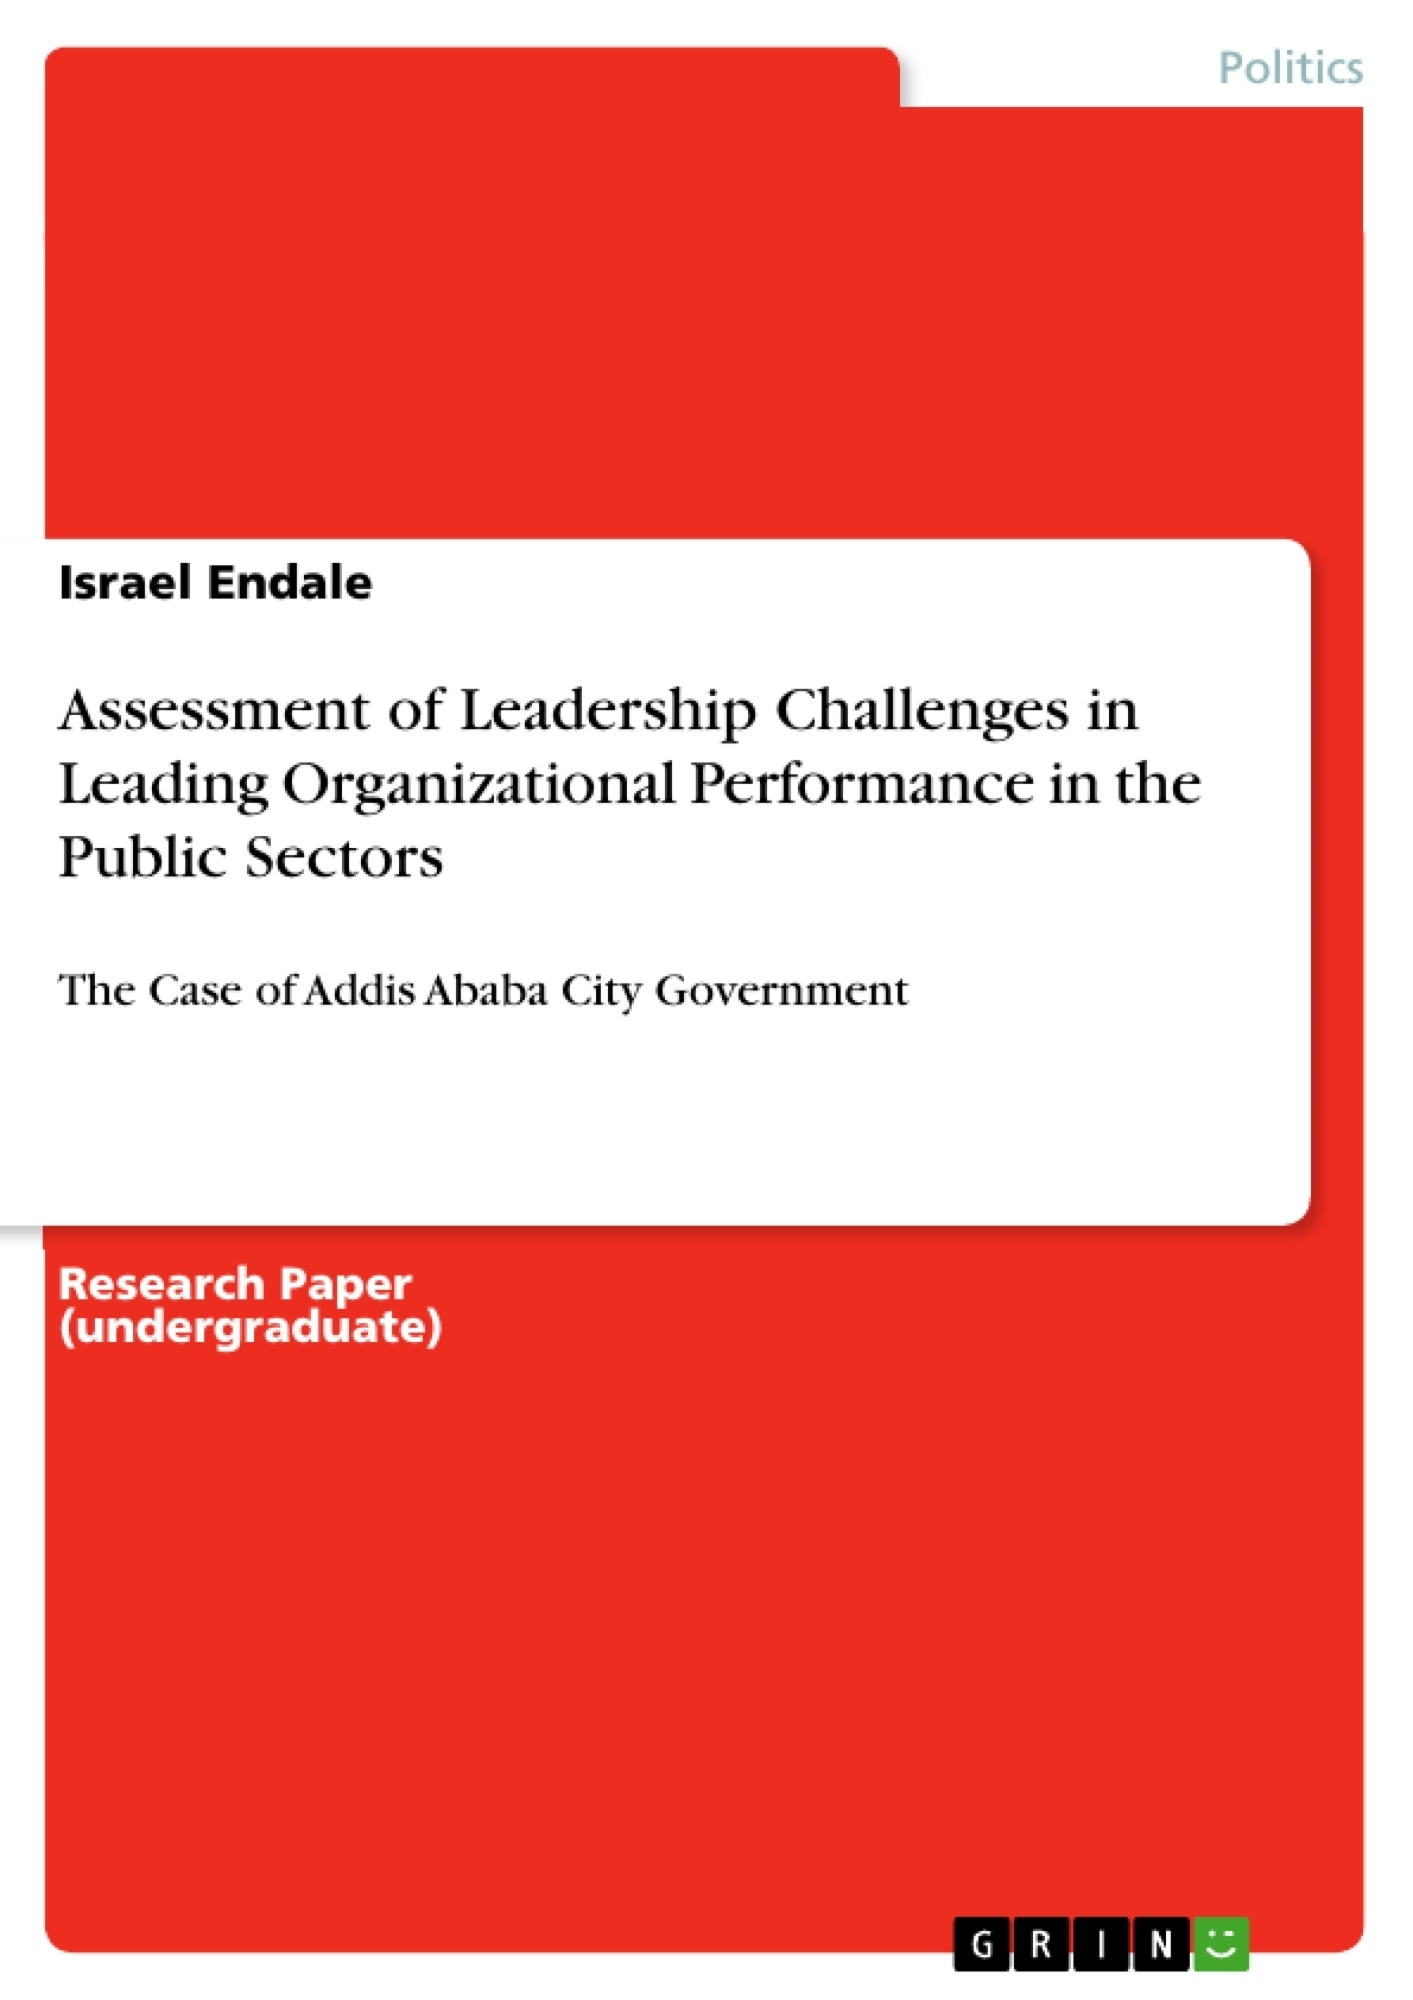 GRIN - Assessment of Leadership Challenges in Leading Organizational  Performance in the Public Sectors